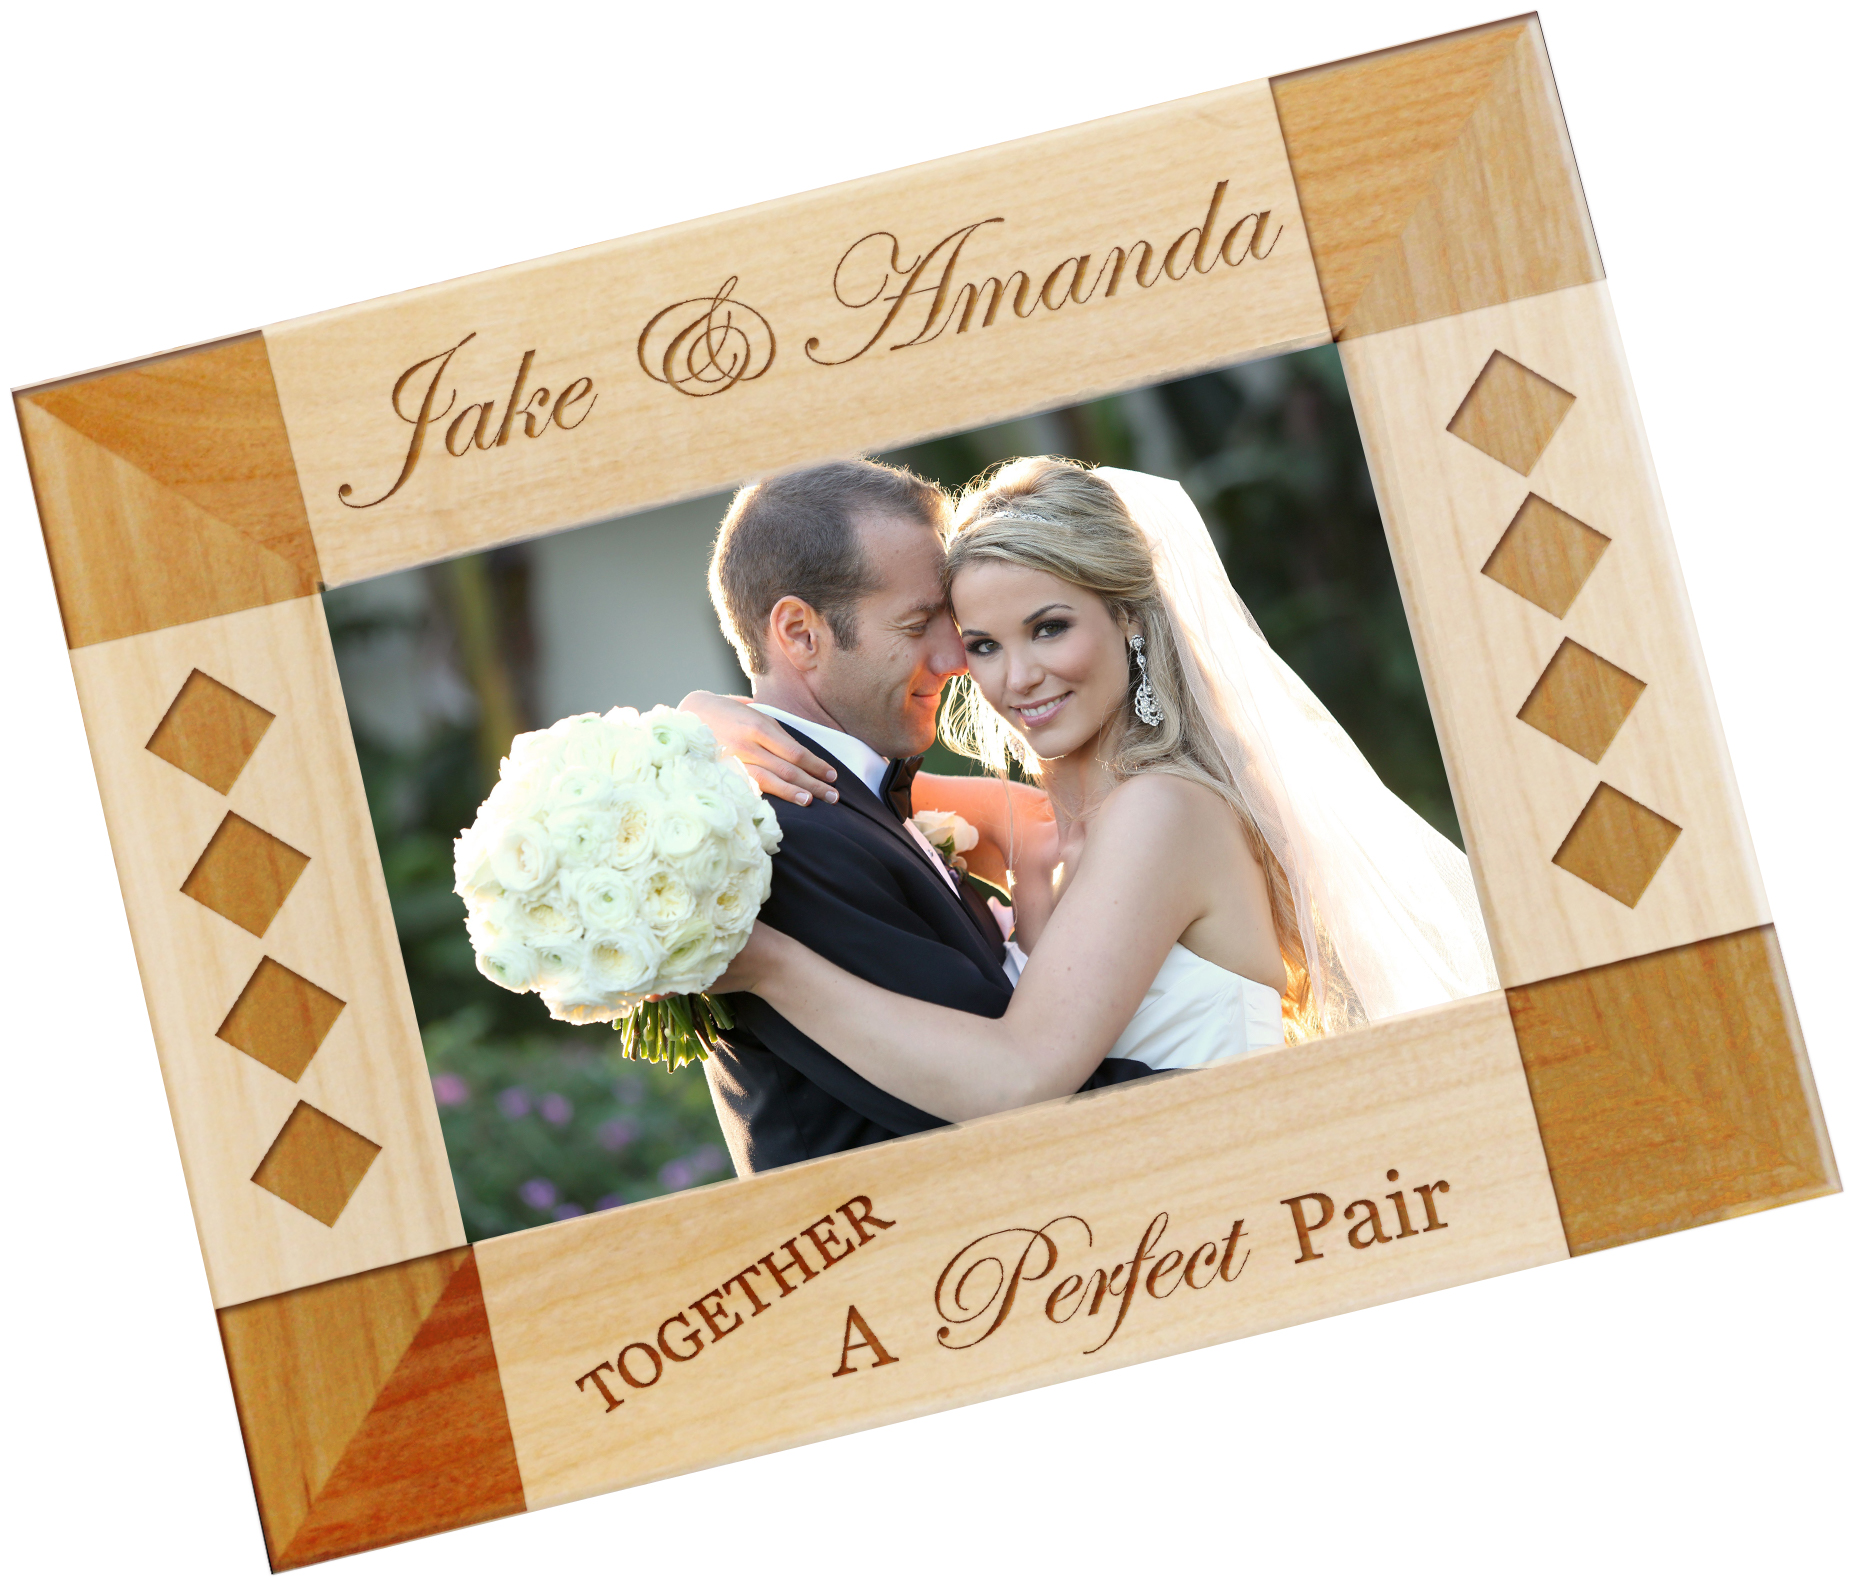 cef06108e4fd A Perfect Pair Personalized Photo Frame